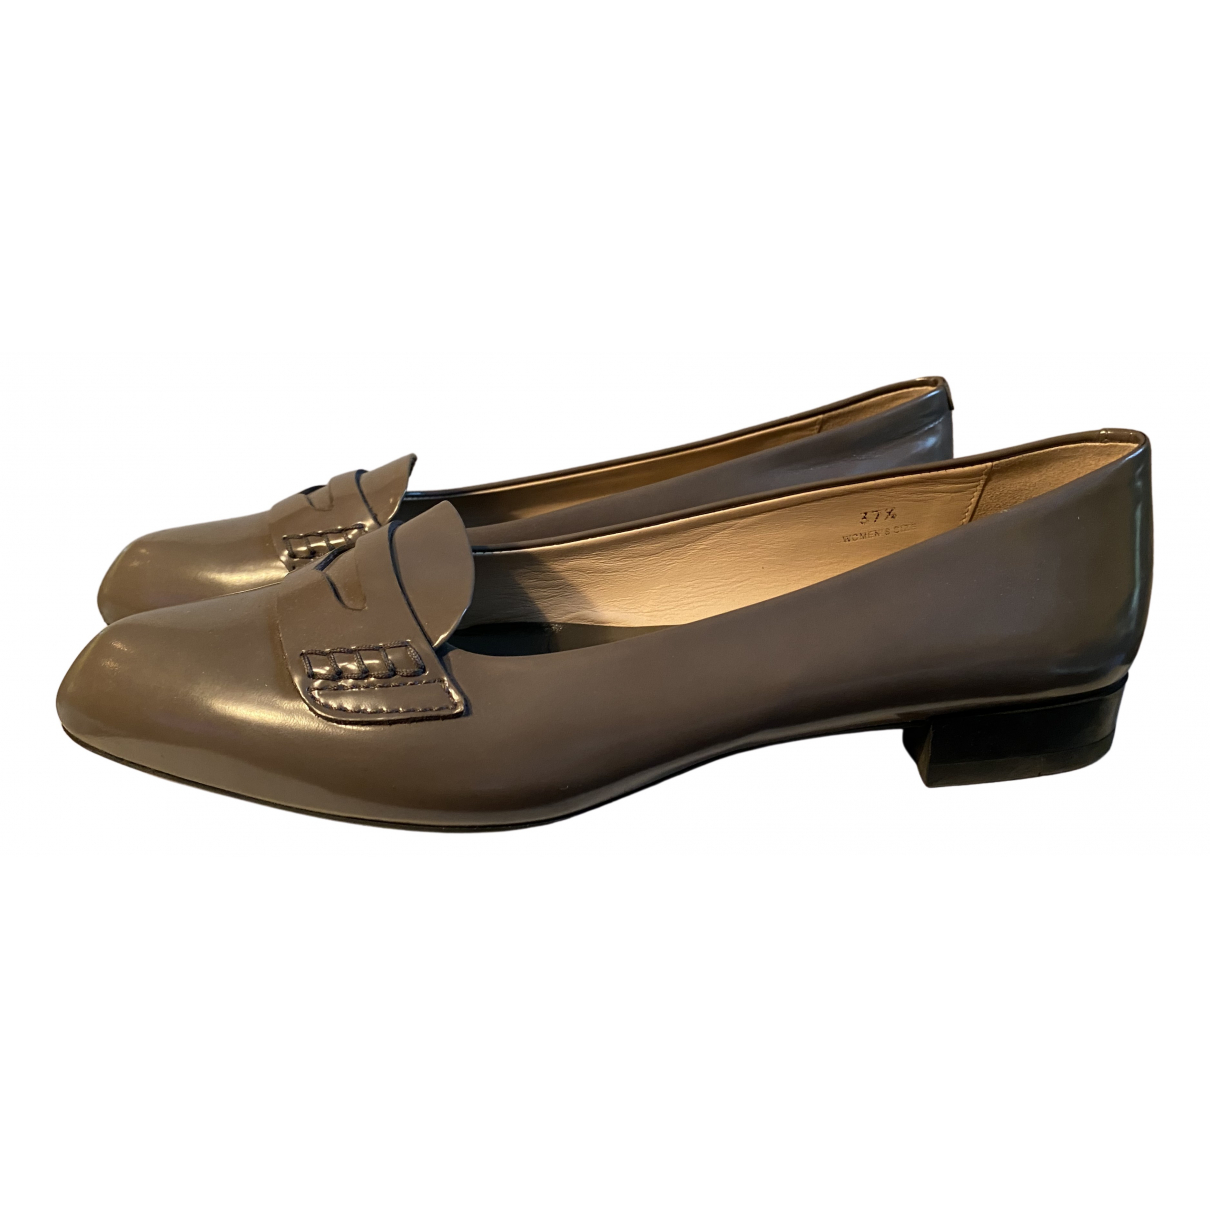 Tod's N Grey Patent leather Flats for Women 37.5 EU